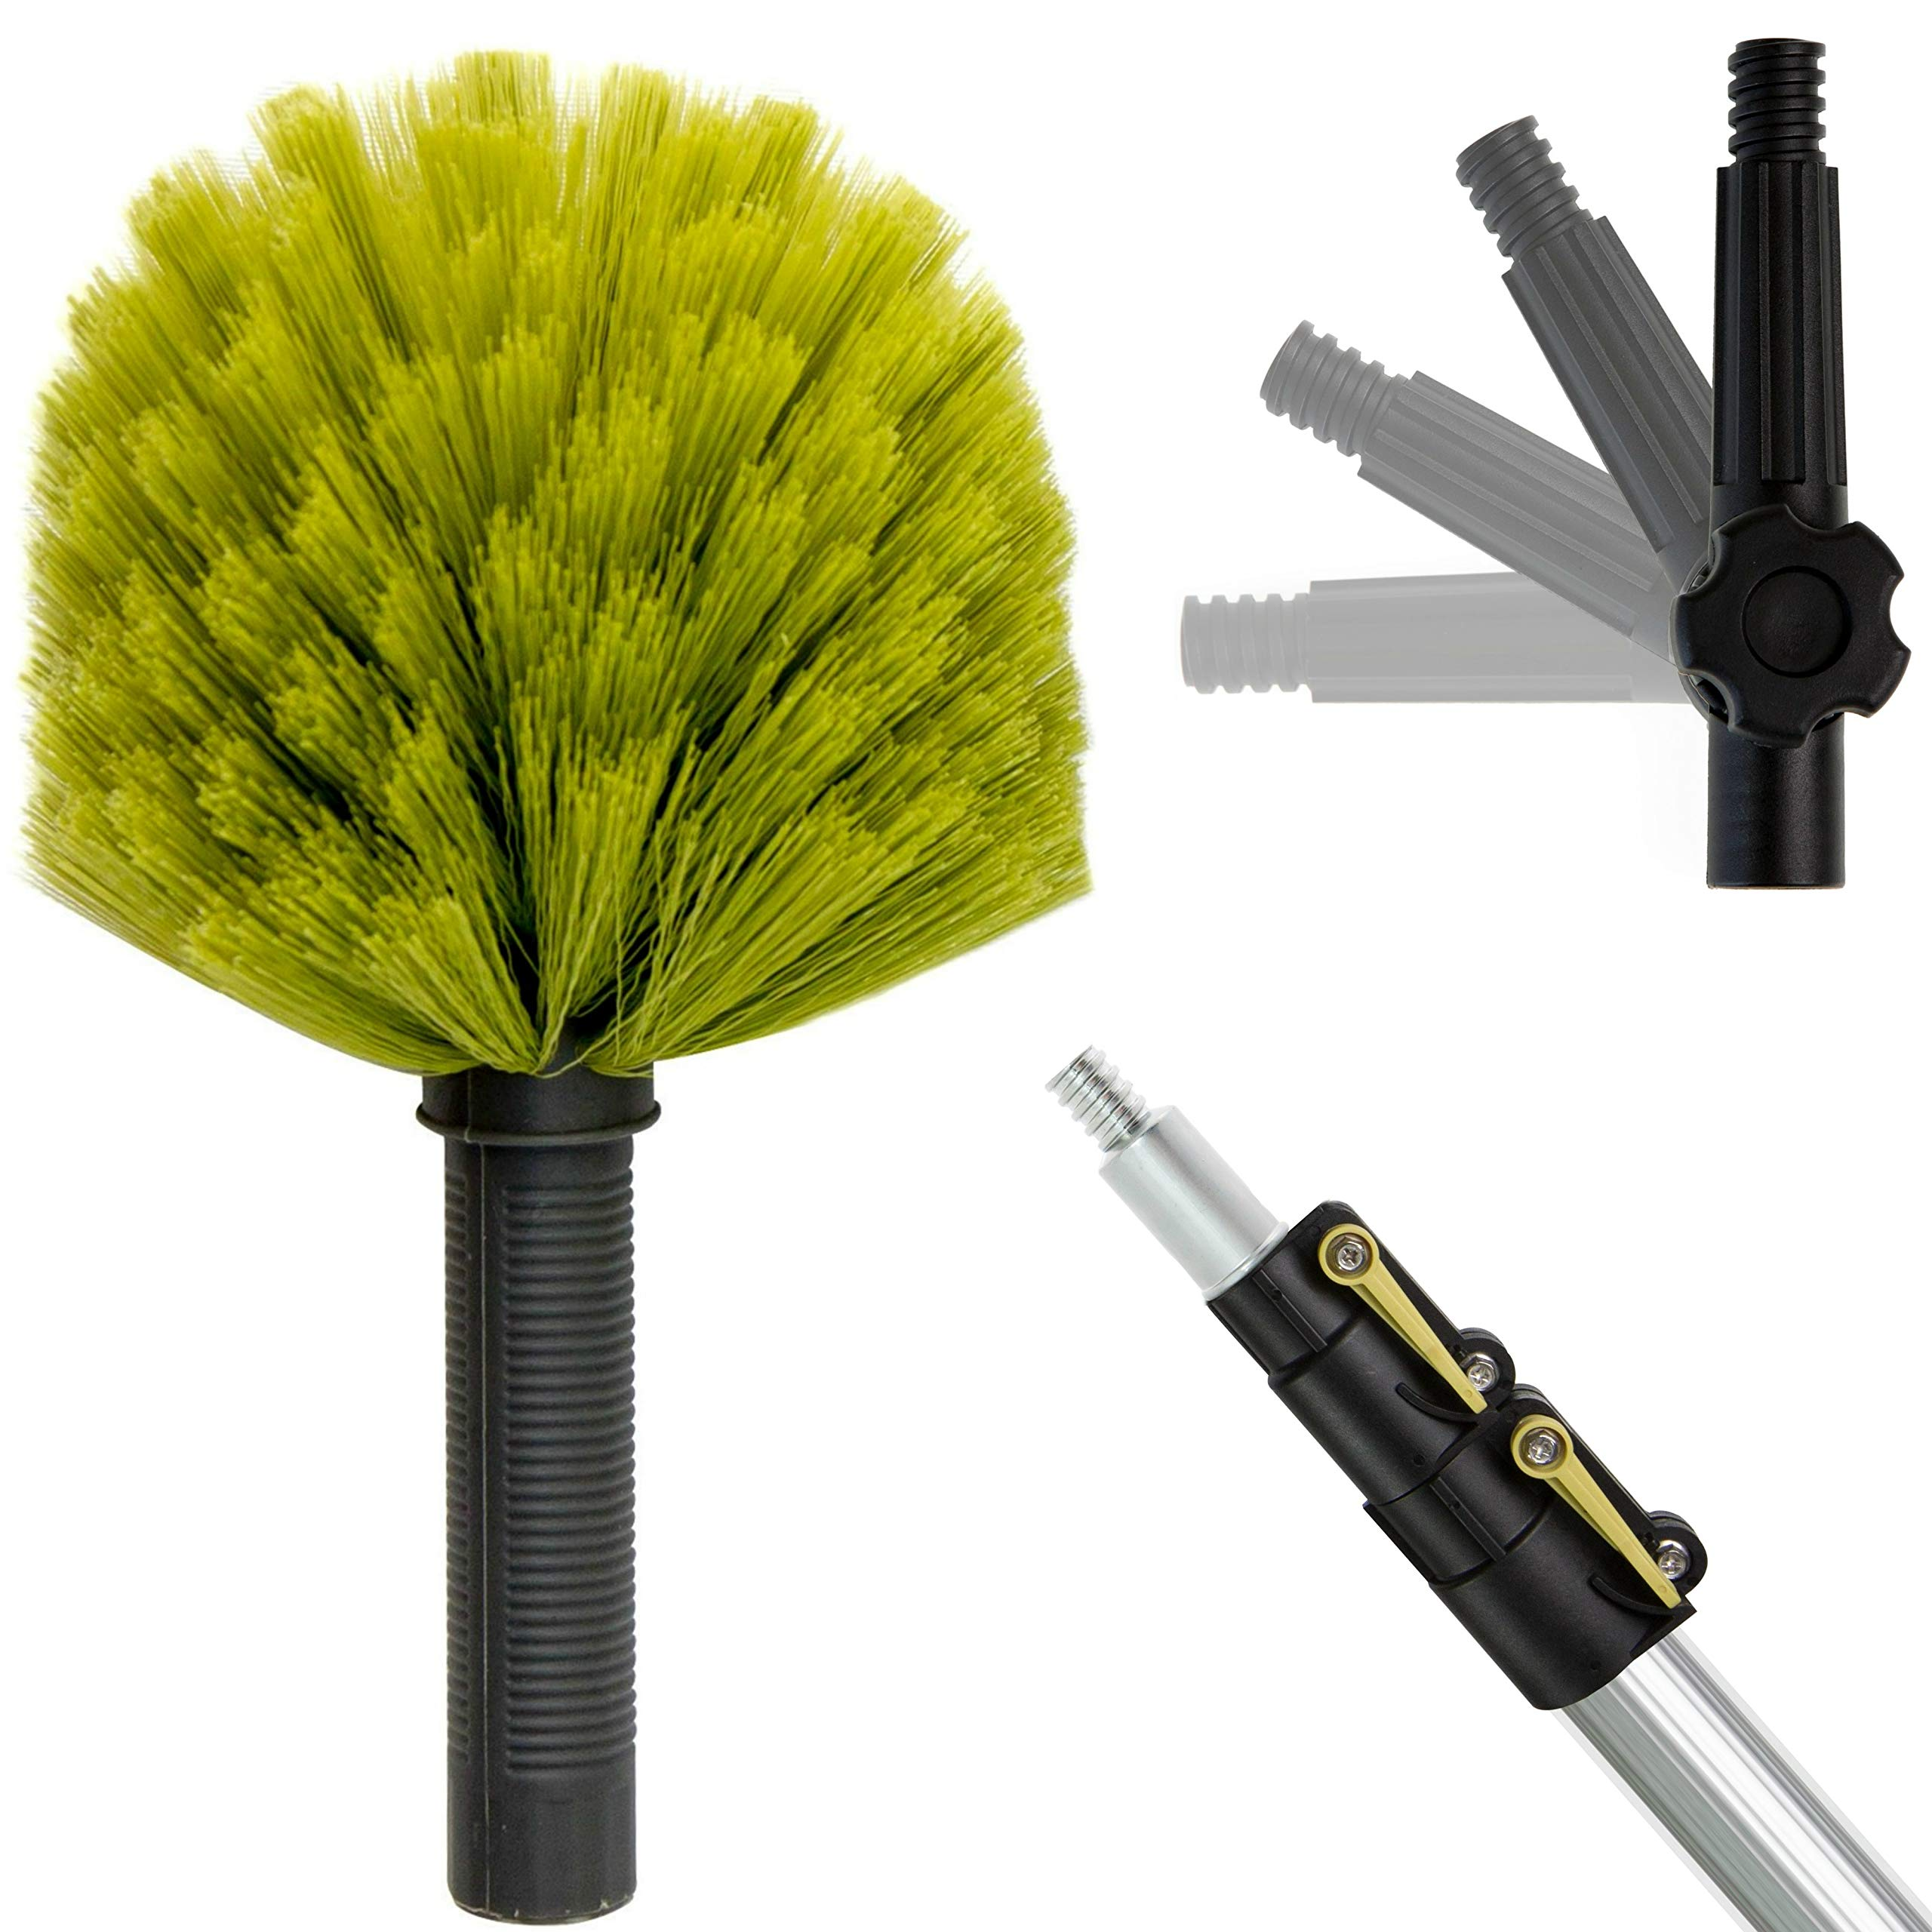 DocaPole 5-12 Foot Extension Pole with Cobweb Duster // Ceiling and Corner Duster // For Dusting and Cleaning High Ceilings and Corners with Extension Pole // Telescopic Pole Dusting and Cleaning Kit by DOCAZOO